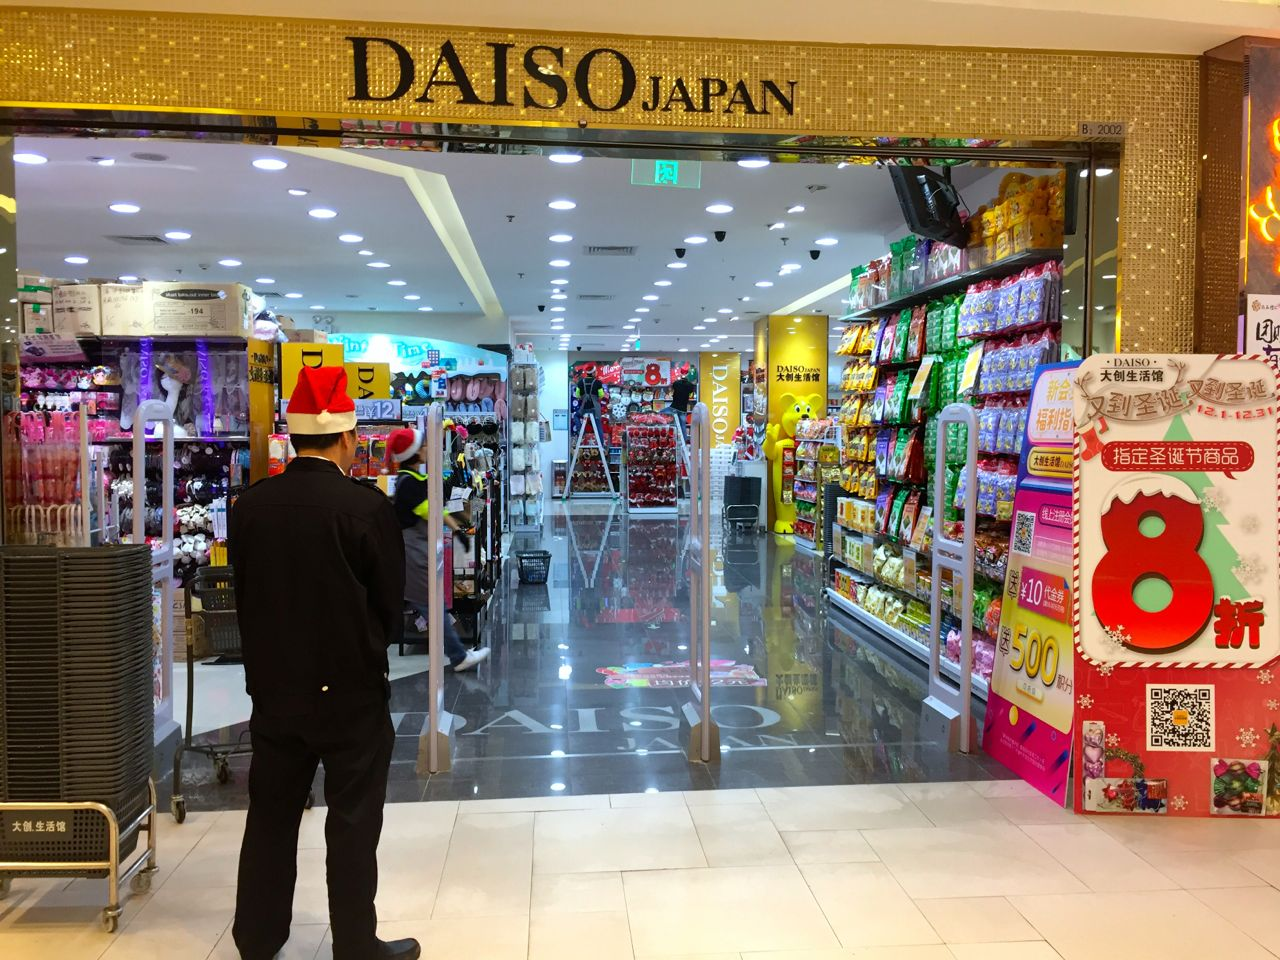 daiso-japan-christmas-shopping